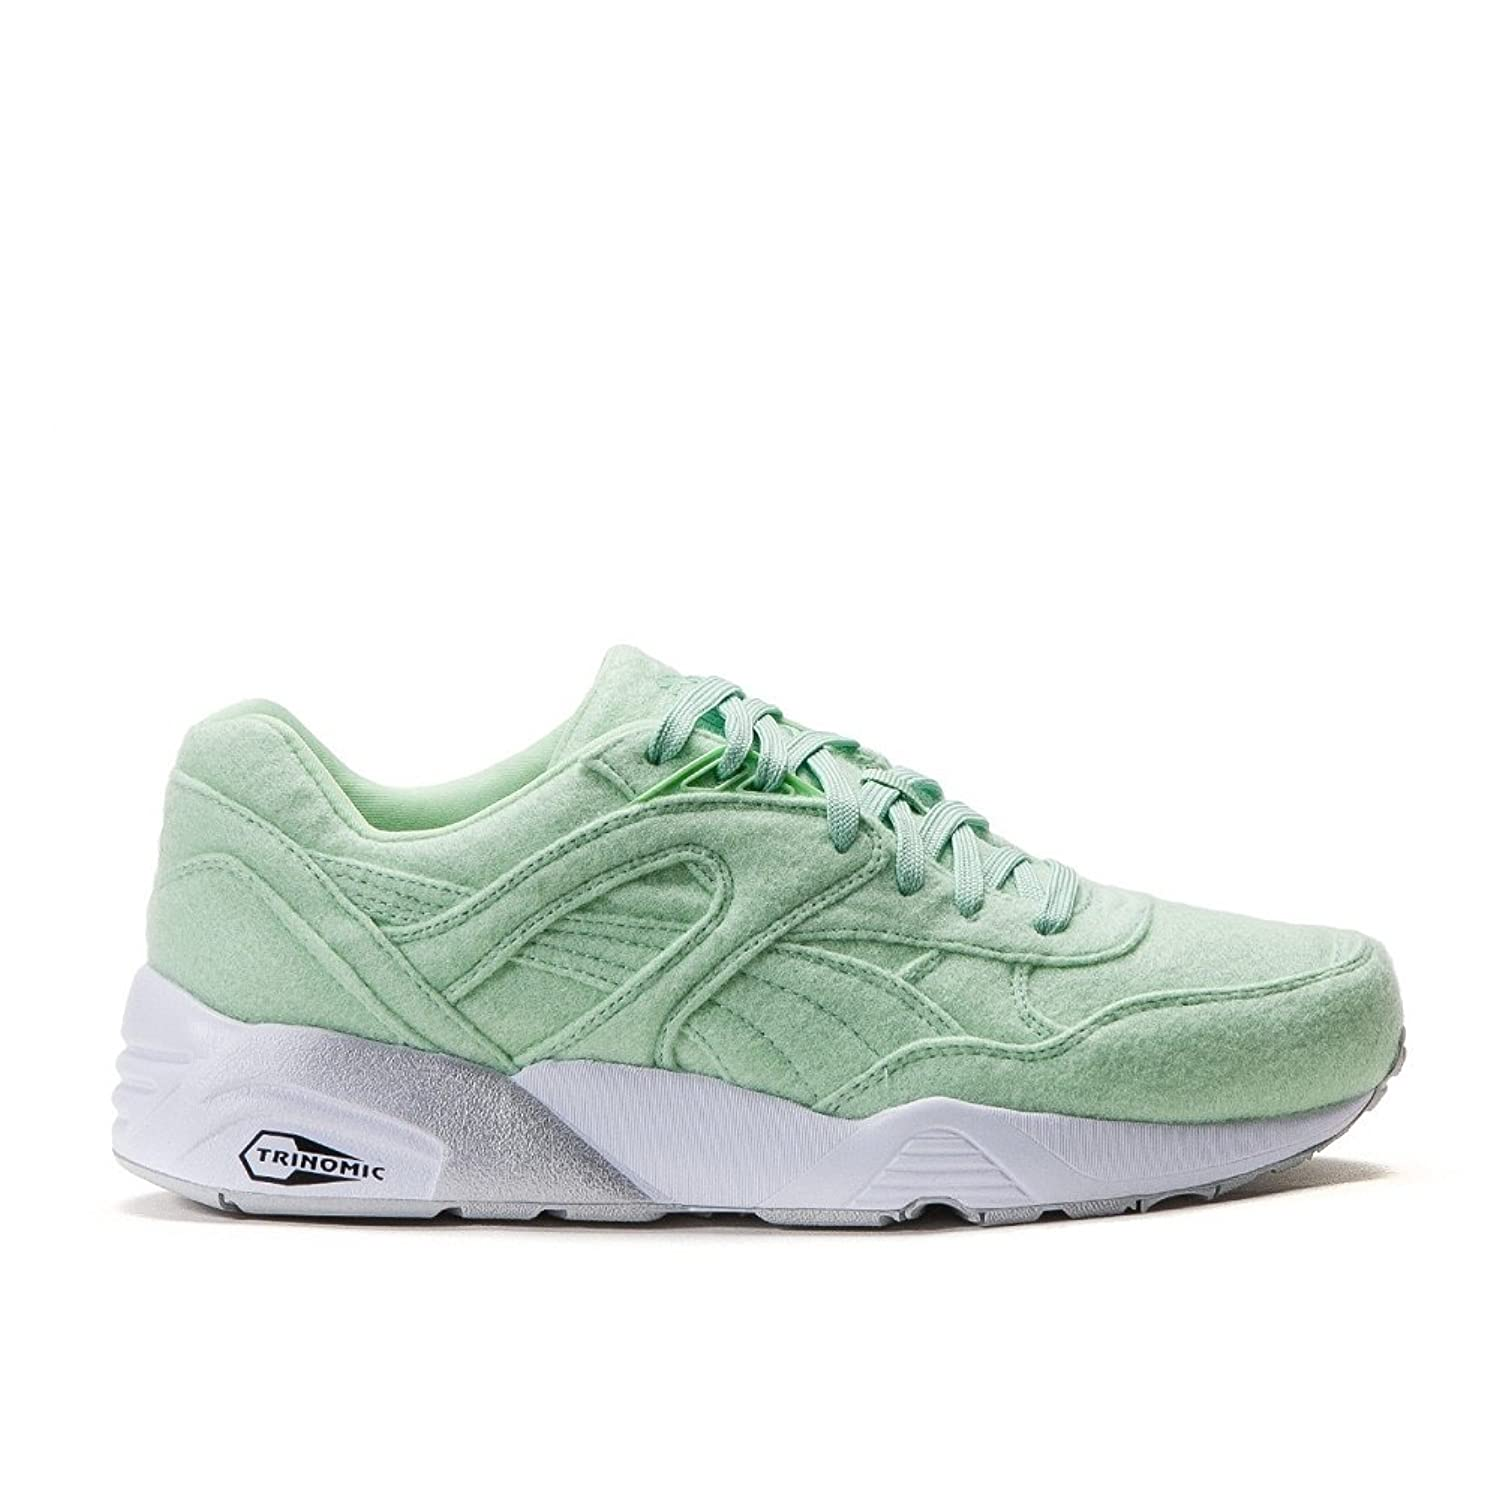 photos officielles 3270b 98293 85%OFF Men's PUMA R698 Bright Mint Green 358832 04 ...